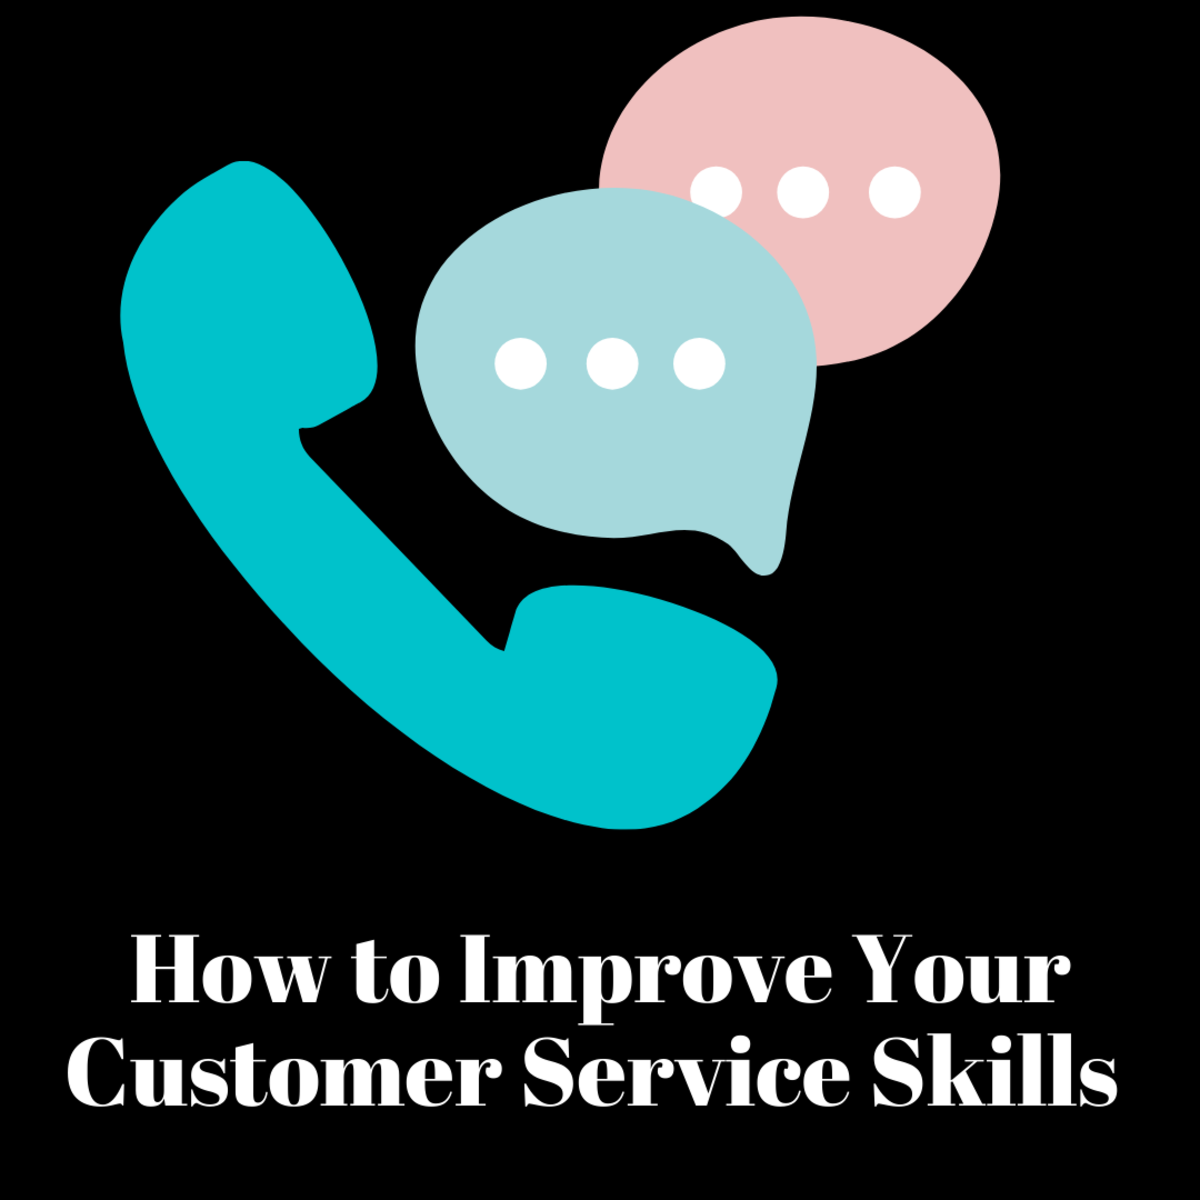 How to Improve Your Customer Service Skills and Be a Good Customer Service Representative (CSR)